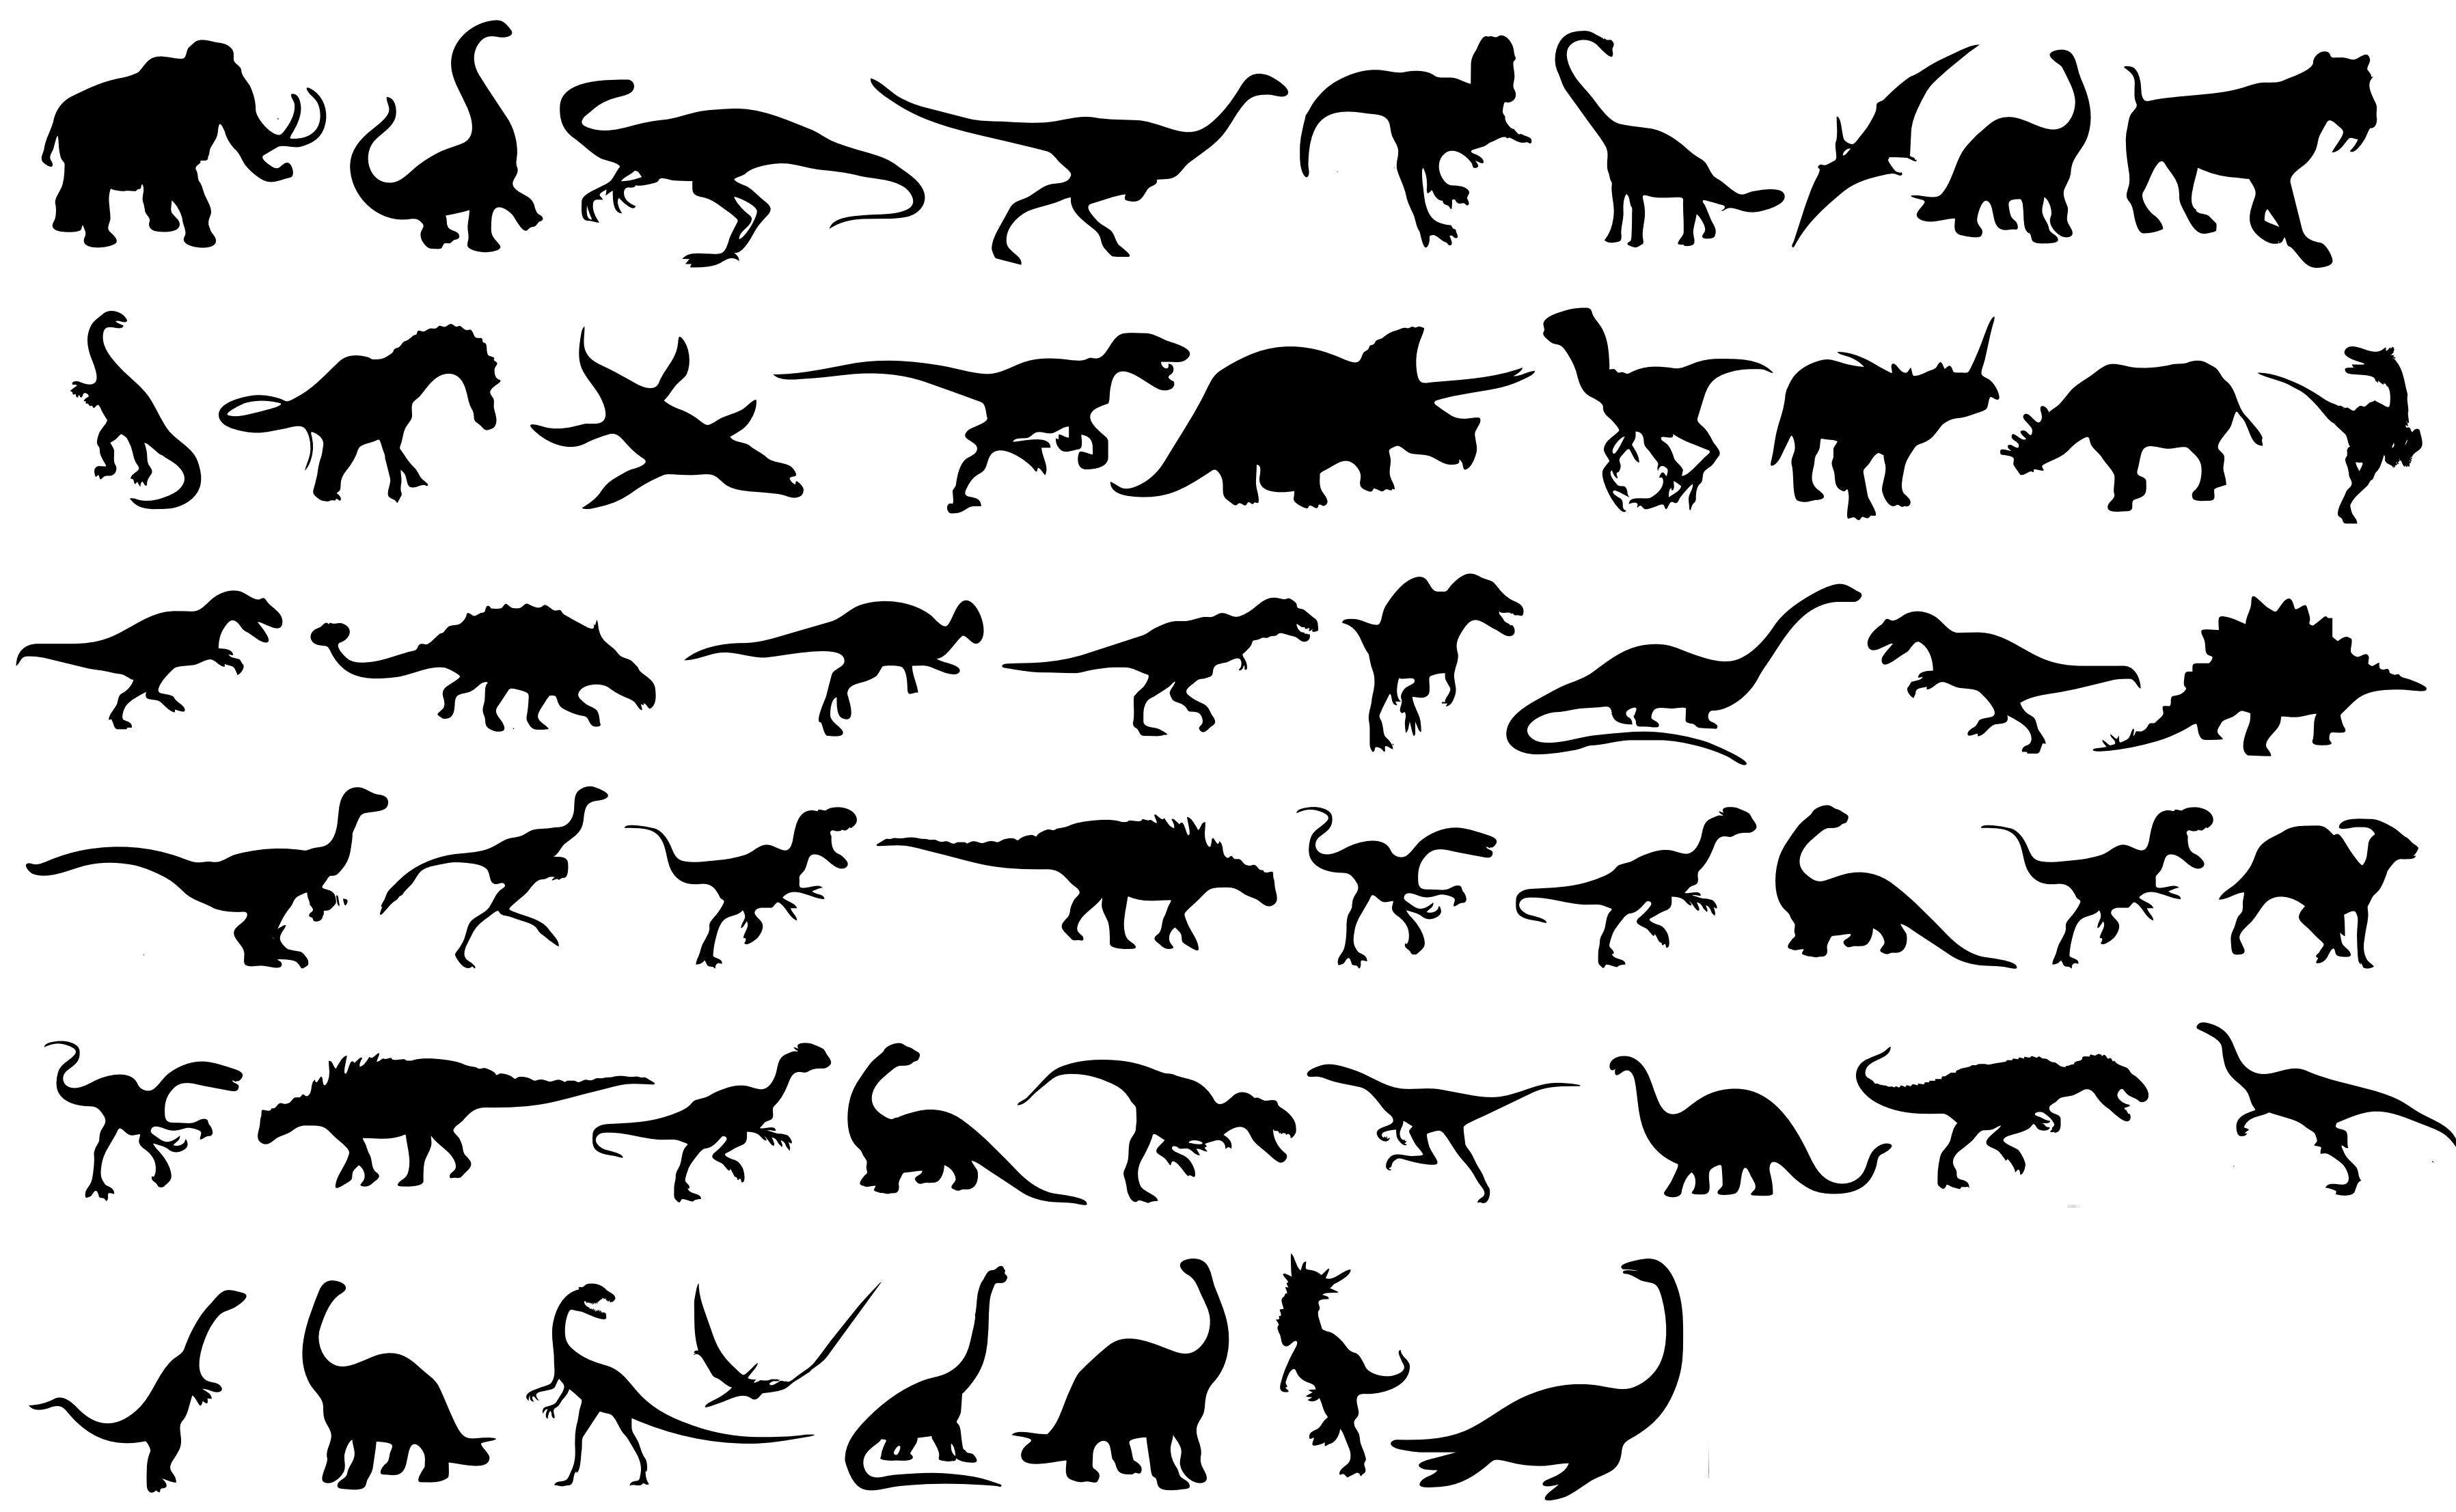 Dinosaurs Silhouettes png